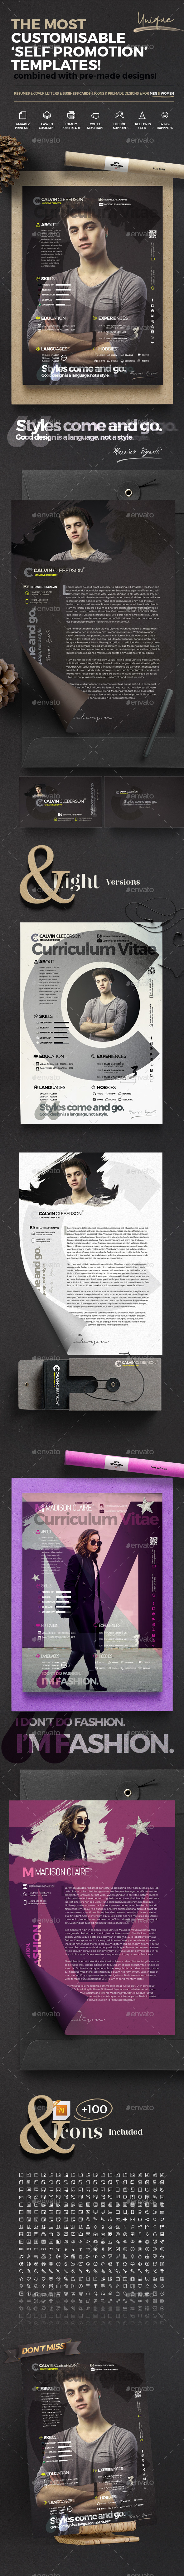 The Curriculum Vitae - Self Promotion Templates - Resumes Stationery